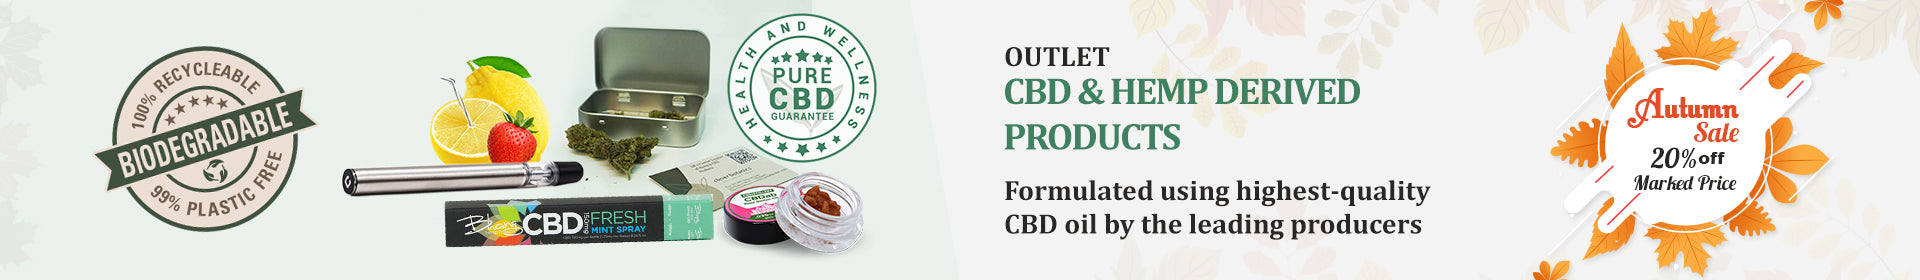 Outlet Products